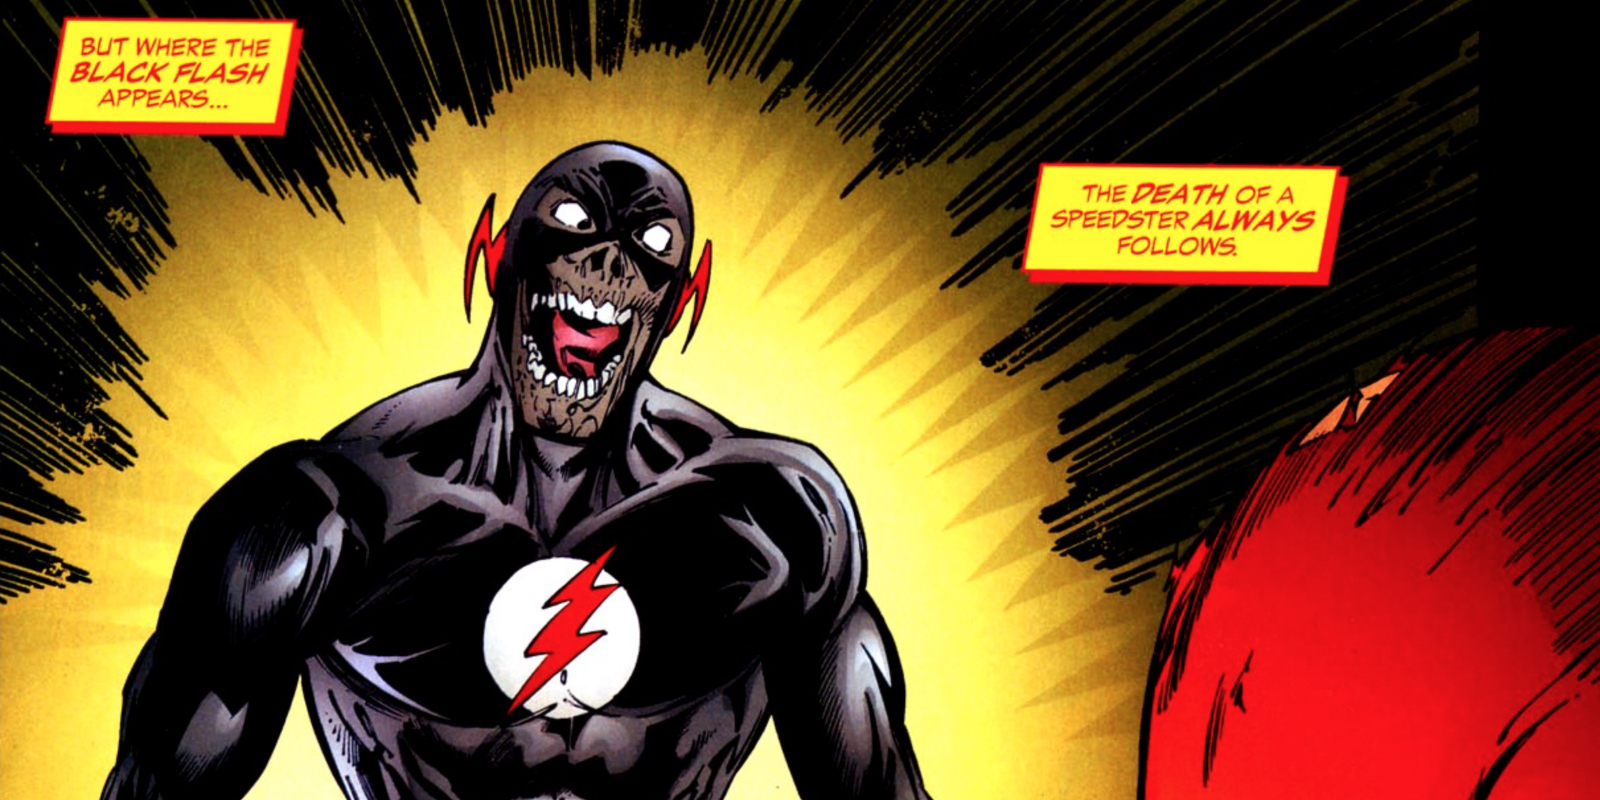 The Flash: Expect Black Flash to Return